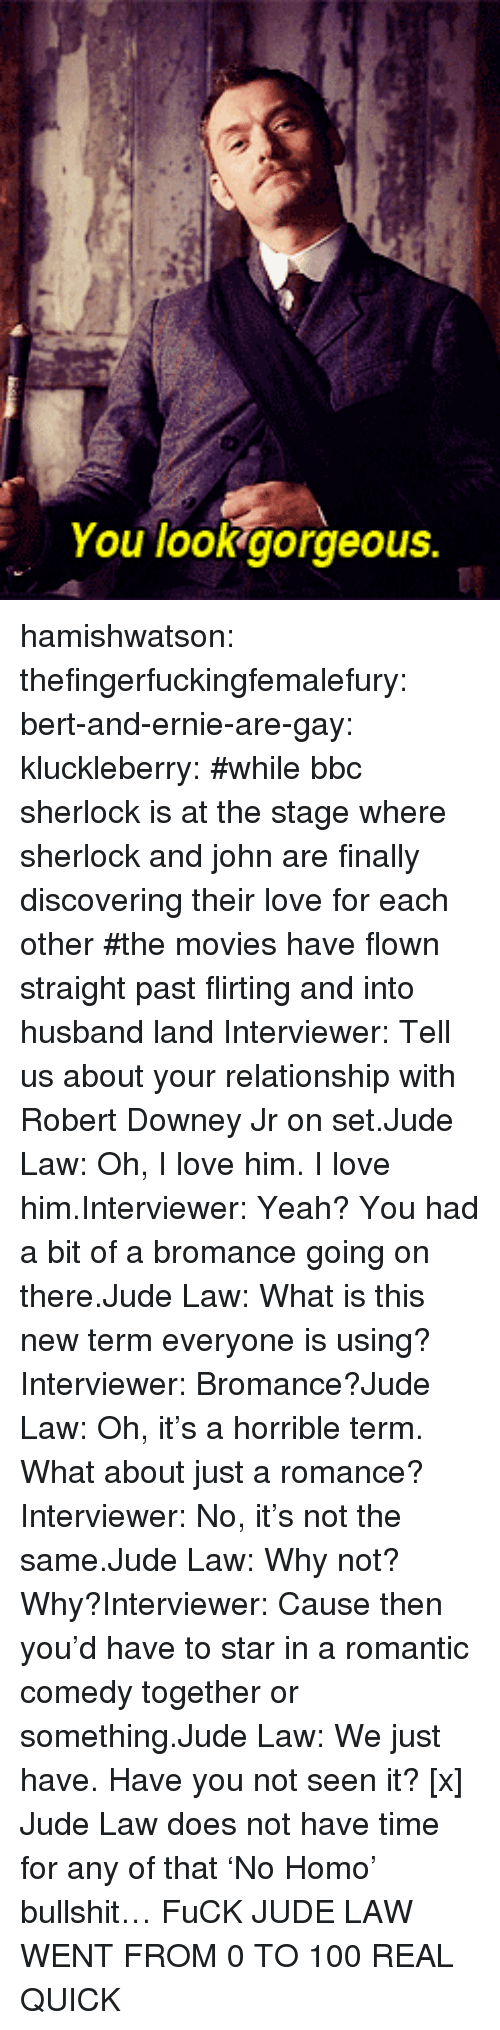 0 to 100: You lookgorgeous. hamishwatson: thefingerfuckingfemalefury:  bert-and-ernie-are-gay:  kluckleberry: #while bbc sherlock is at the stage where sherlock and john are finally discovering their love for each other #the movies have flown straight past flirting and into husband land Interviewer: Tell us about your relationship with Robert Downey Jr on set.Jude Law: Oh, I love him. I love him.Interviewer: Yeah? You had a bit of a bromance going on there.Jude Law: What is this new term everyone is using?Interviewer: Bromance?Jude Law: Oh, it's a horrible term. What about just a romance?Interviewer: No, it's not the same.Jude Law: Why not? Why?Interviewer: Cause then you'd have to star in a romantic comedy together or something.Jude Law: We just have. Have you not seen it? [x]  Jude Law does not have time for any of that 'No Homo' bullshit…  FuCK JUDE LAW WENT FROM 0 TO 100 REAL QUICK